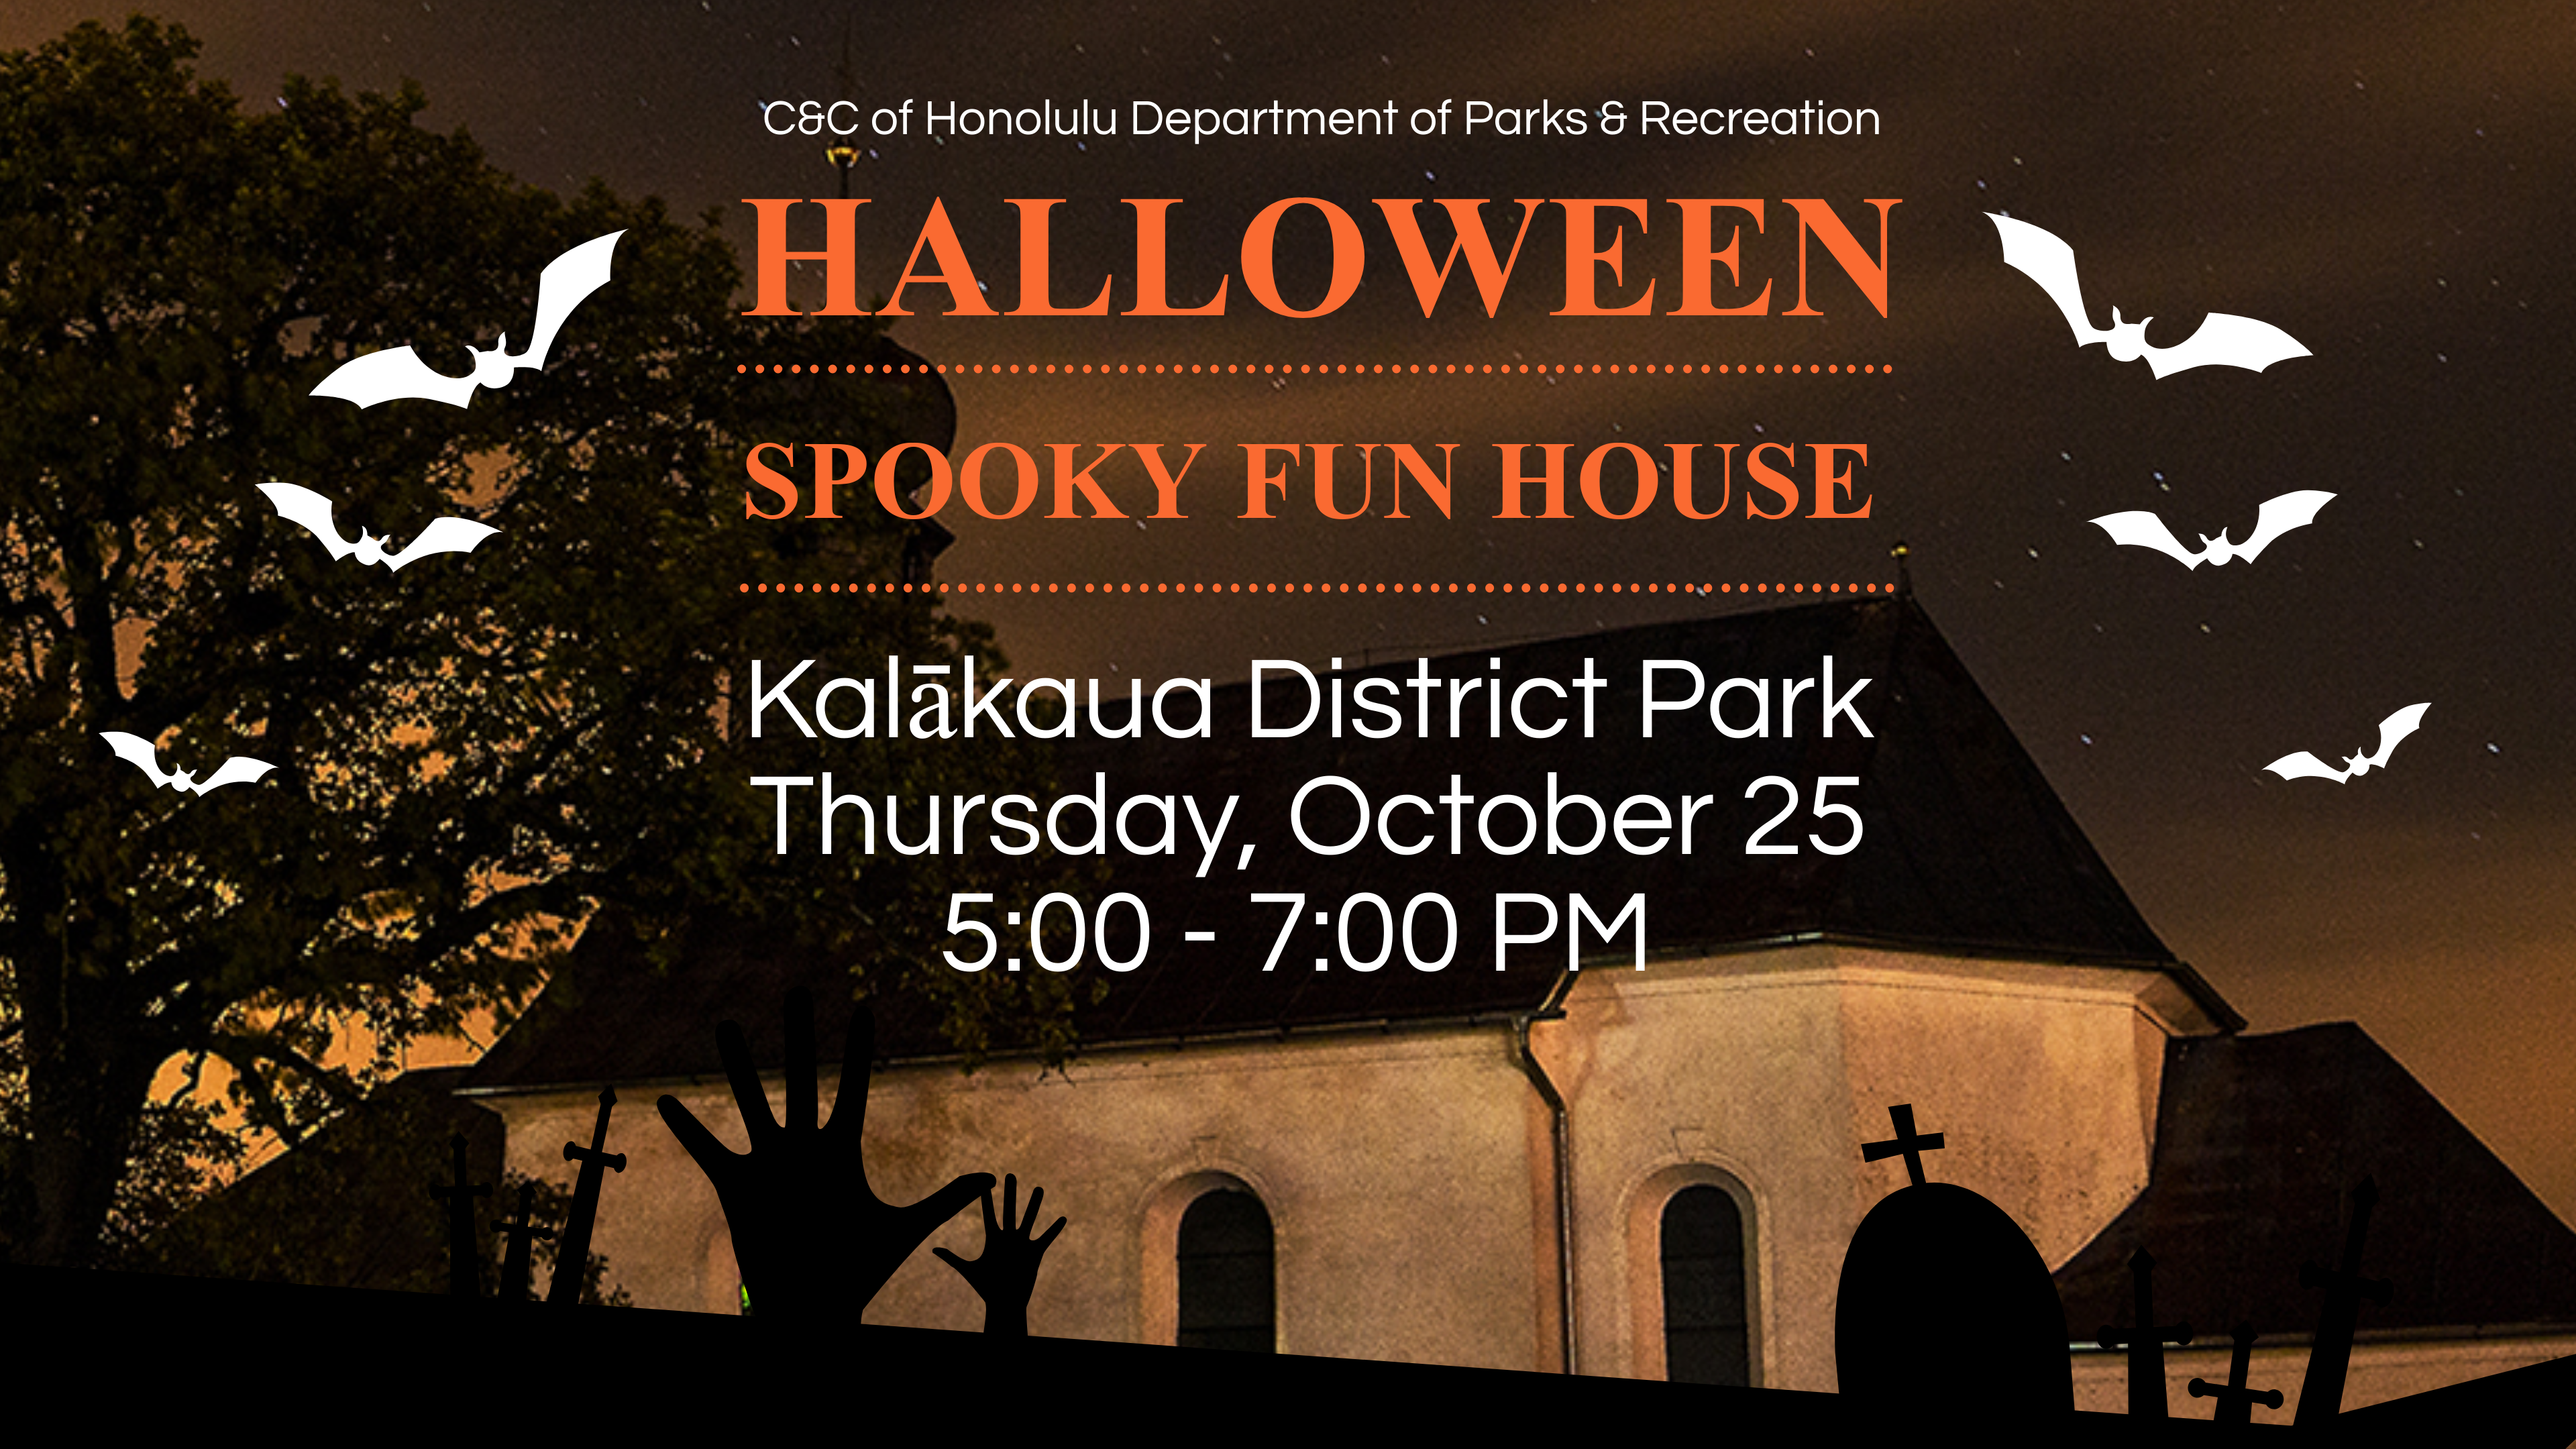 50 Acts of Service: Halloween Spooky Fun House at Kalākaua District Park!